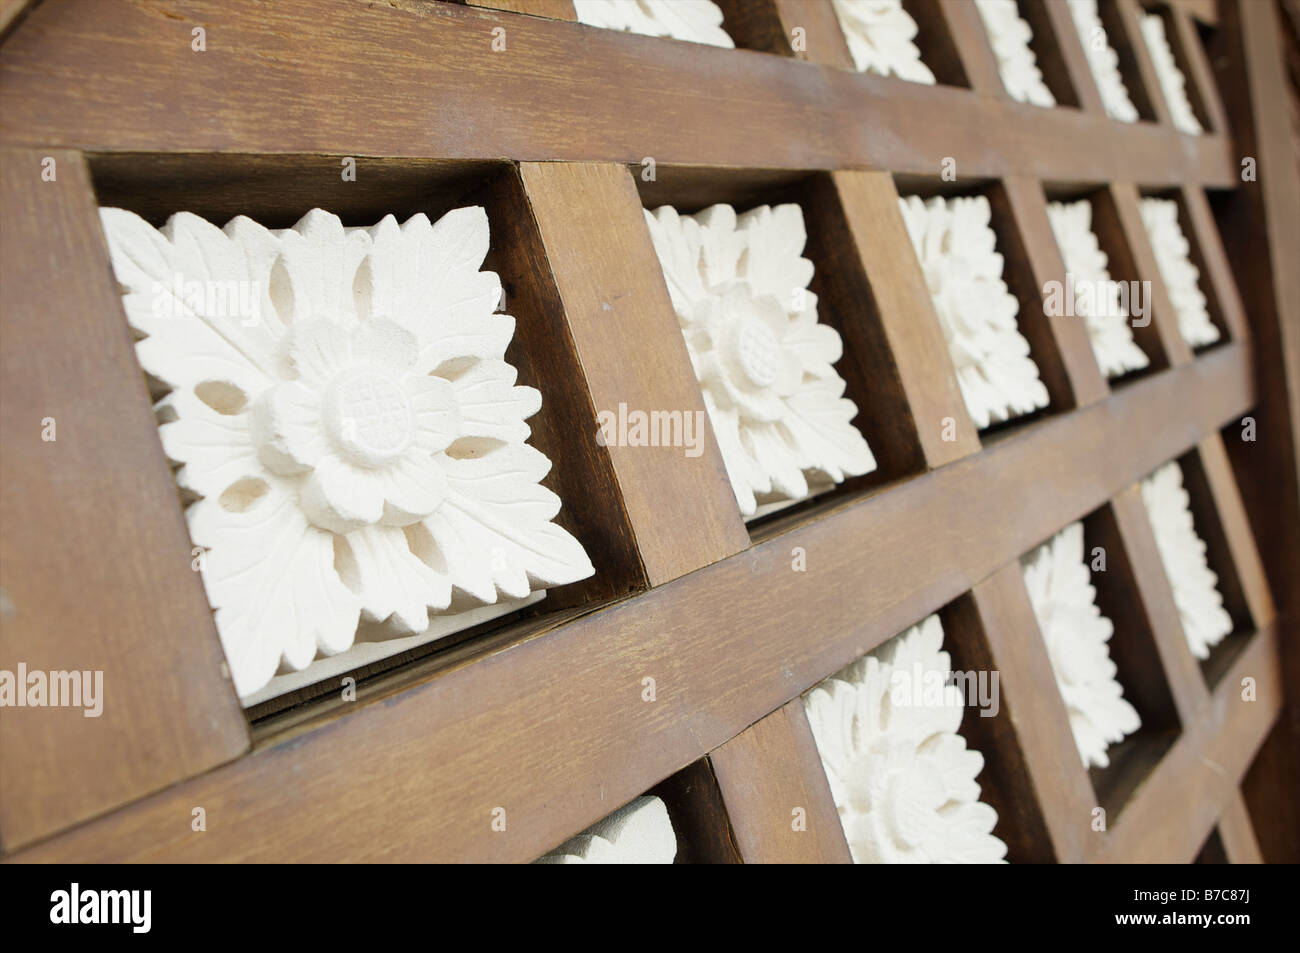 Malaysia carvings in to wood at a traditional house in Miri Malaysia - Stock Image